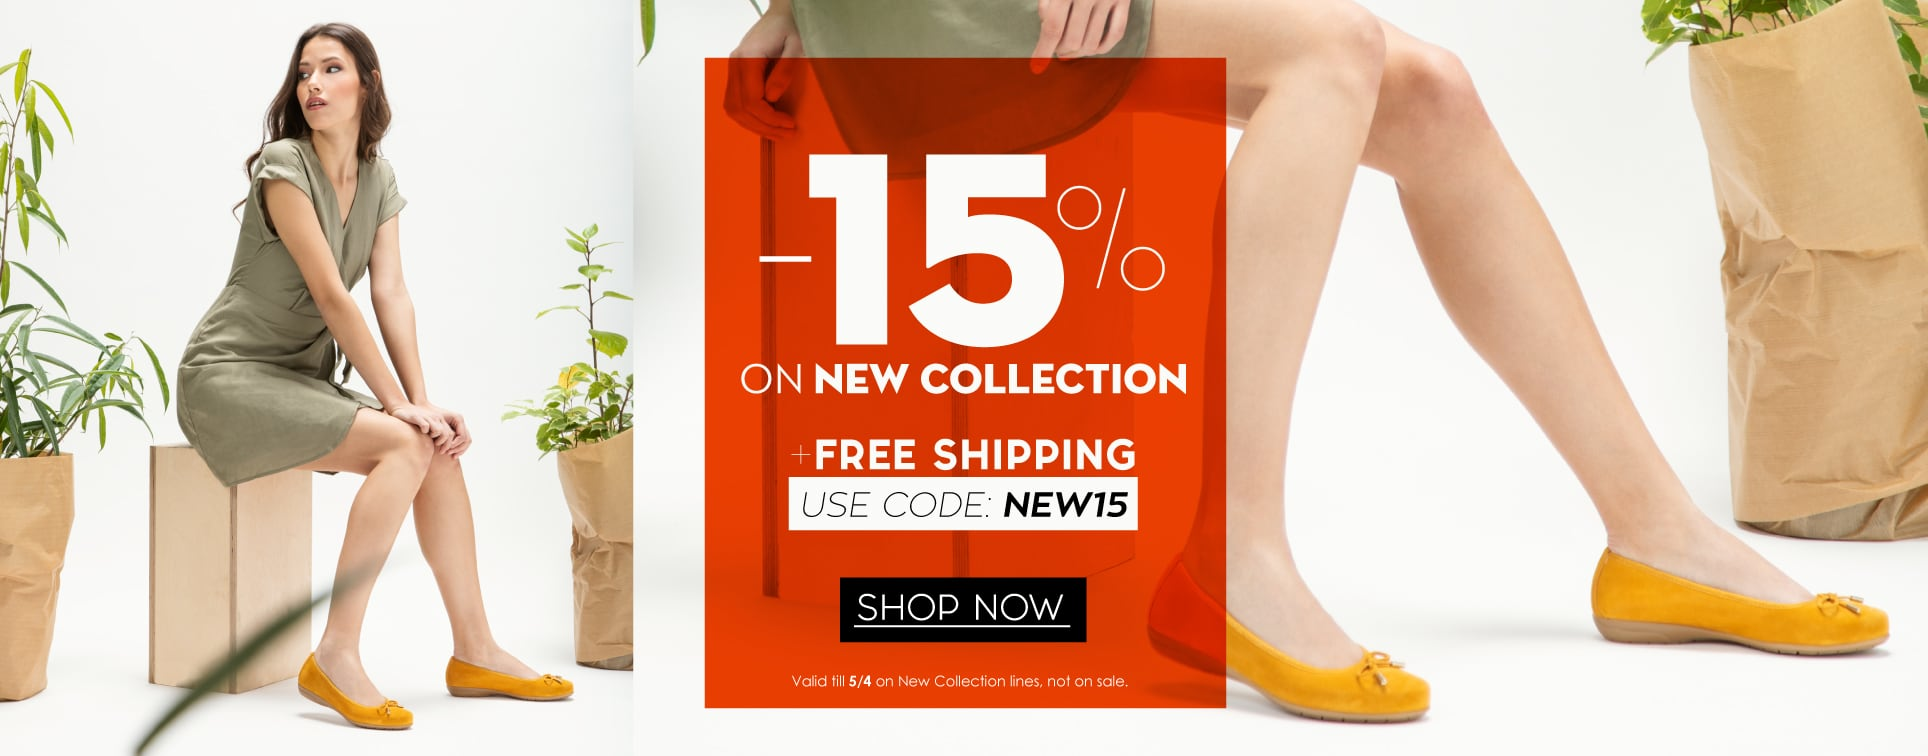 15%OFF ON NEW COLLECTION  & FREE SHIPPING  ,15%OFF_ON_NEW_COLLECTION&FREE_SHIPPING ,15%OFF ON NEW COLLECTION  & FREE SHIPPING  ,15%OFF ON NEW COLLECTION  & FREE SHIPPING  ,4